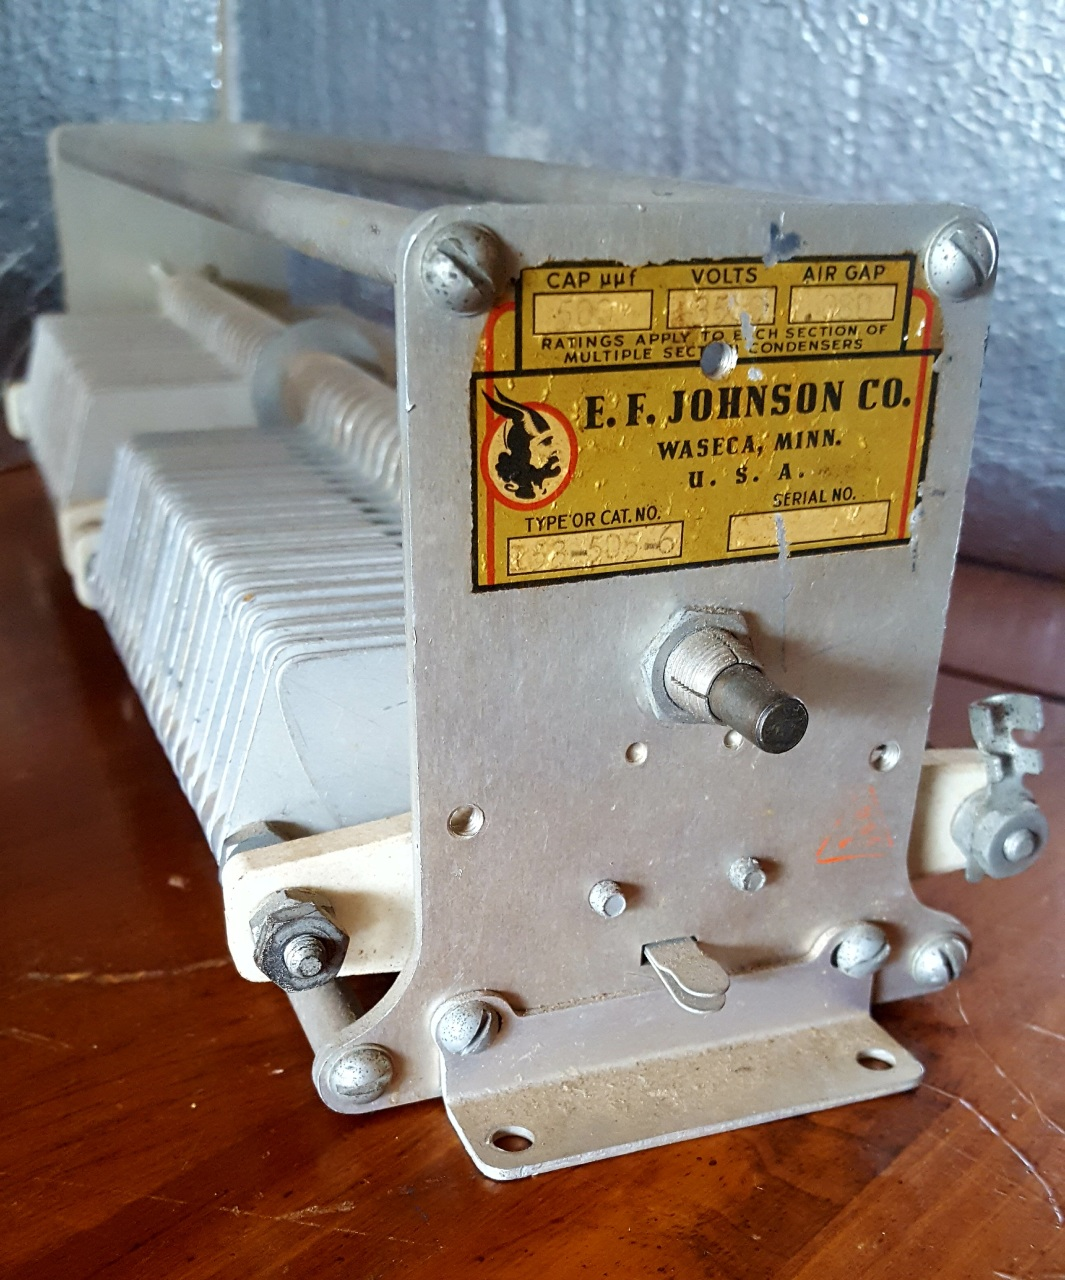 Air Variable Capacitors For Sale - Ham Repair Guy